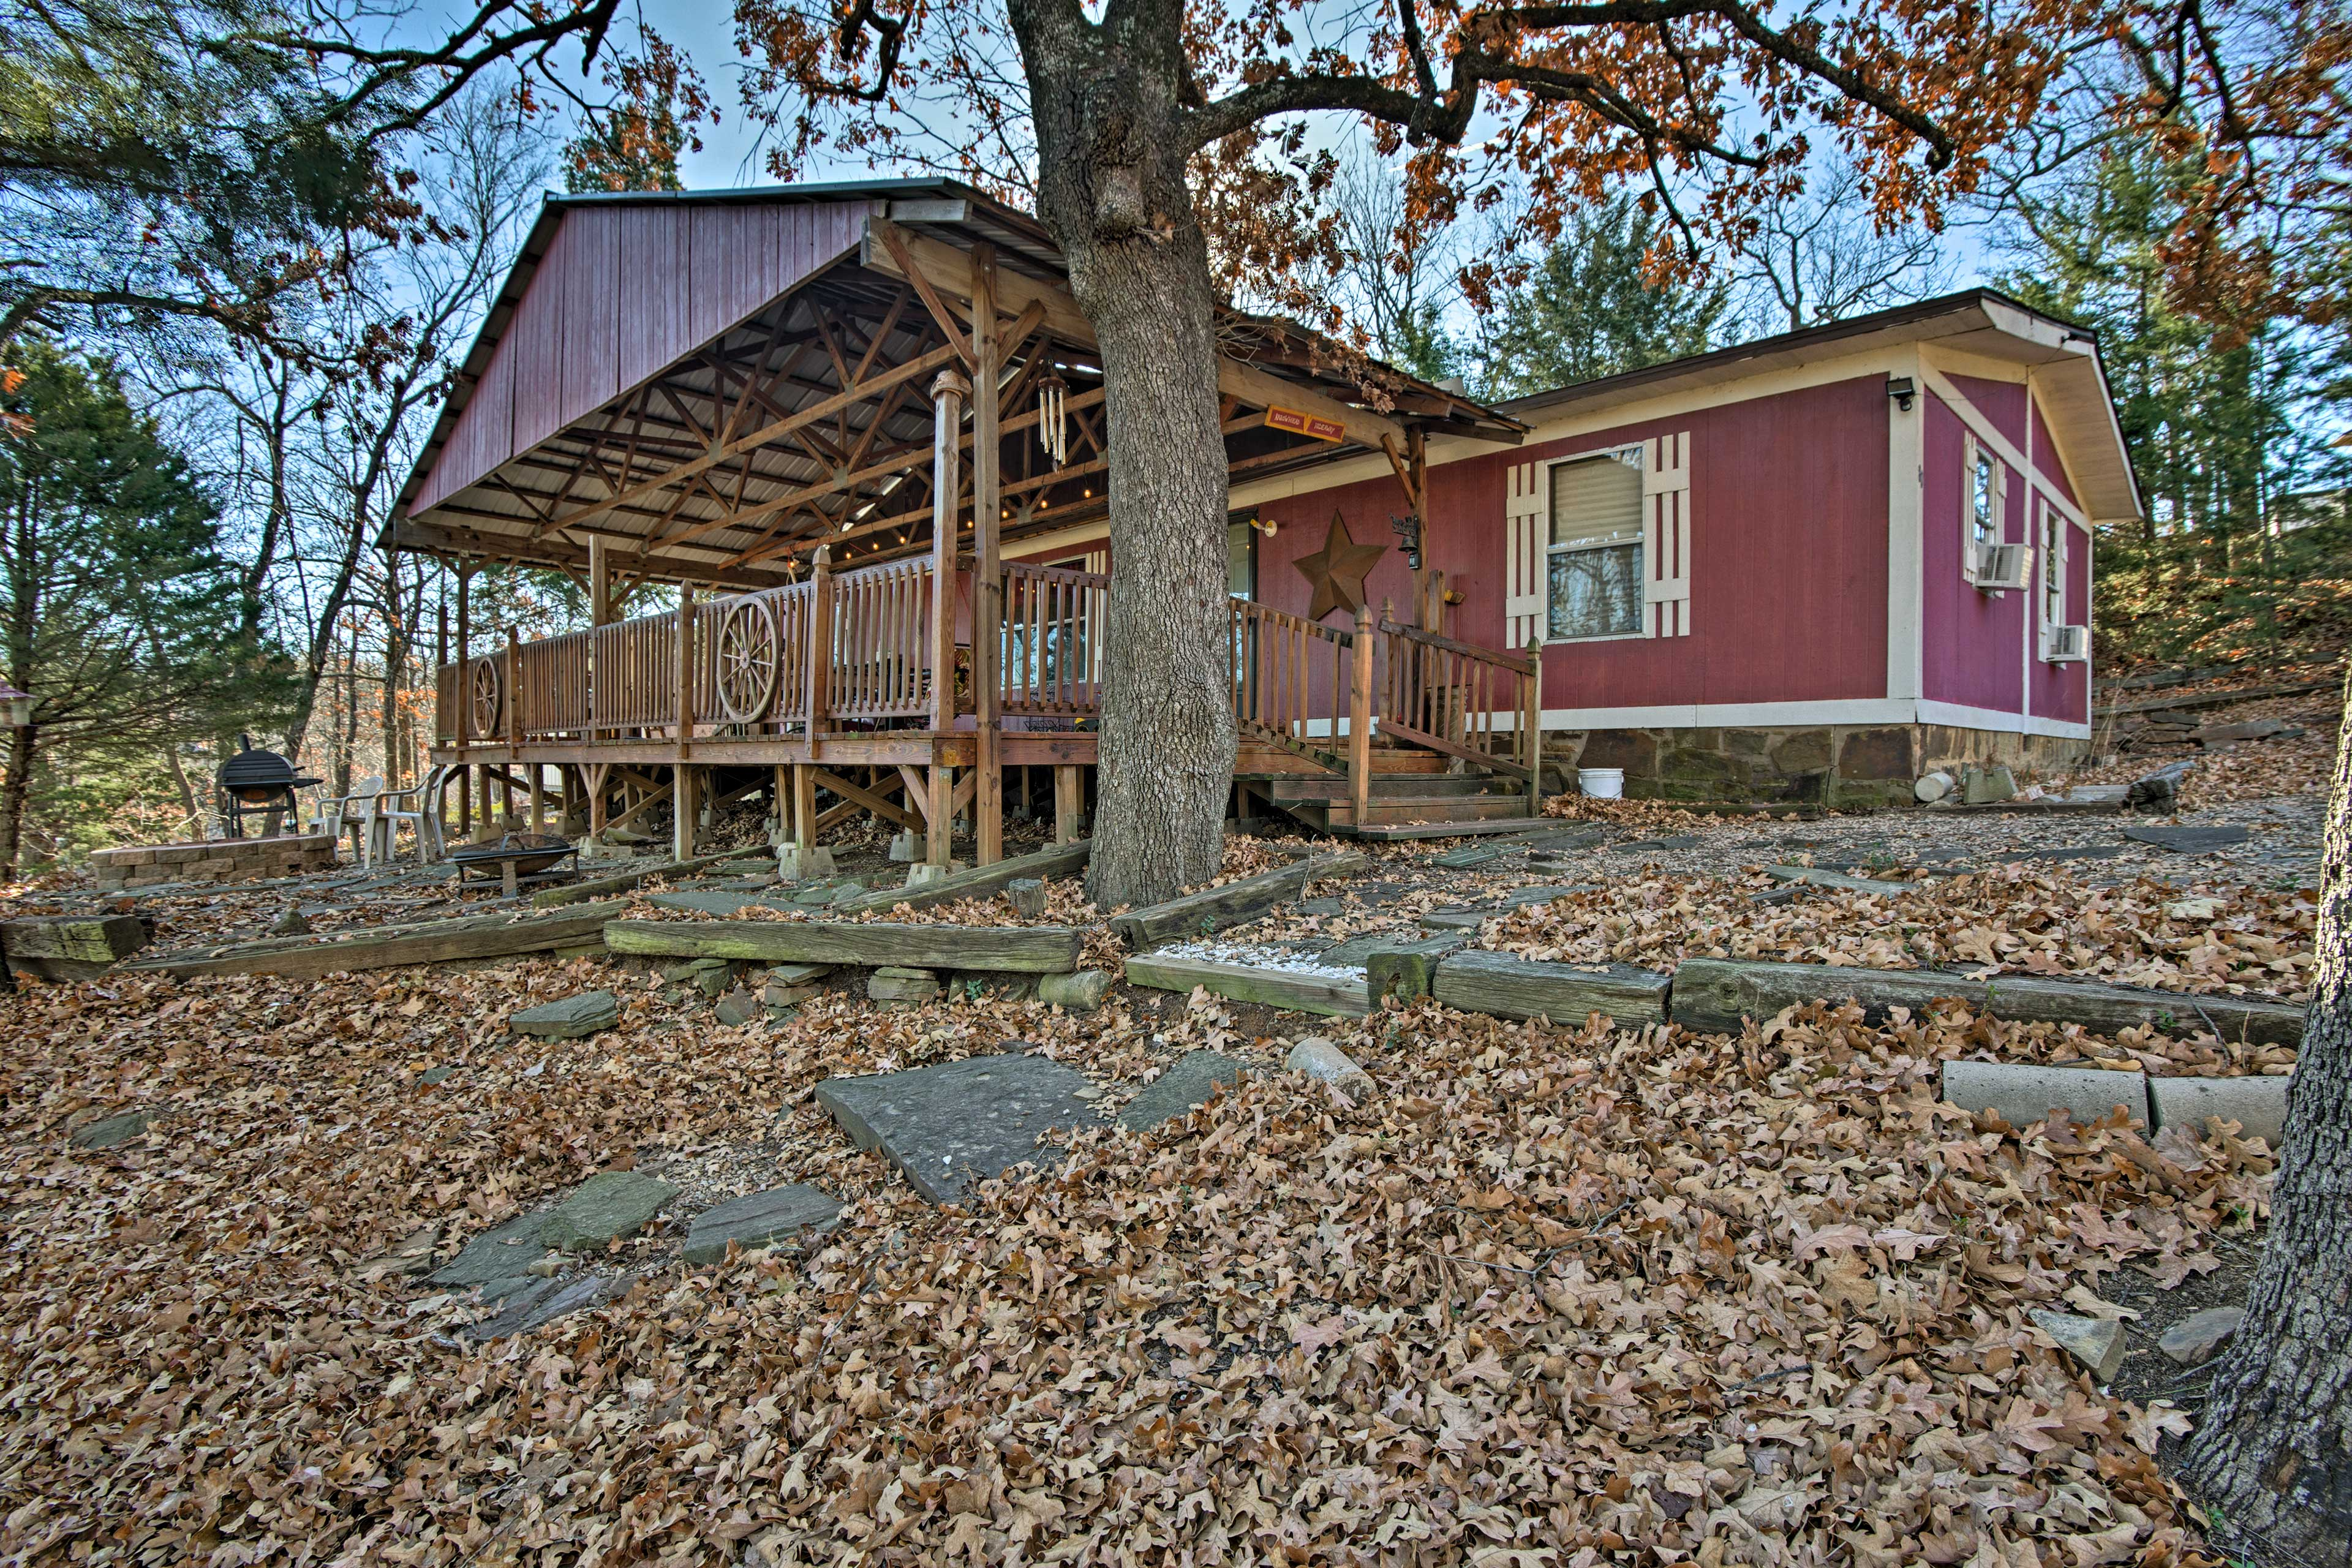 This 3-bedroom, 2-bath home comfortably sleeps up to 10 guests!